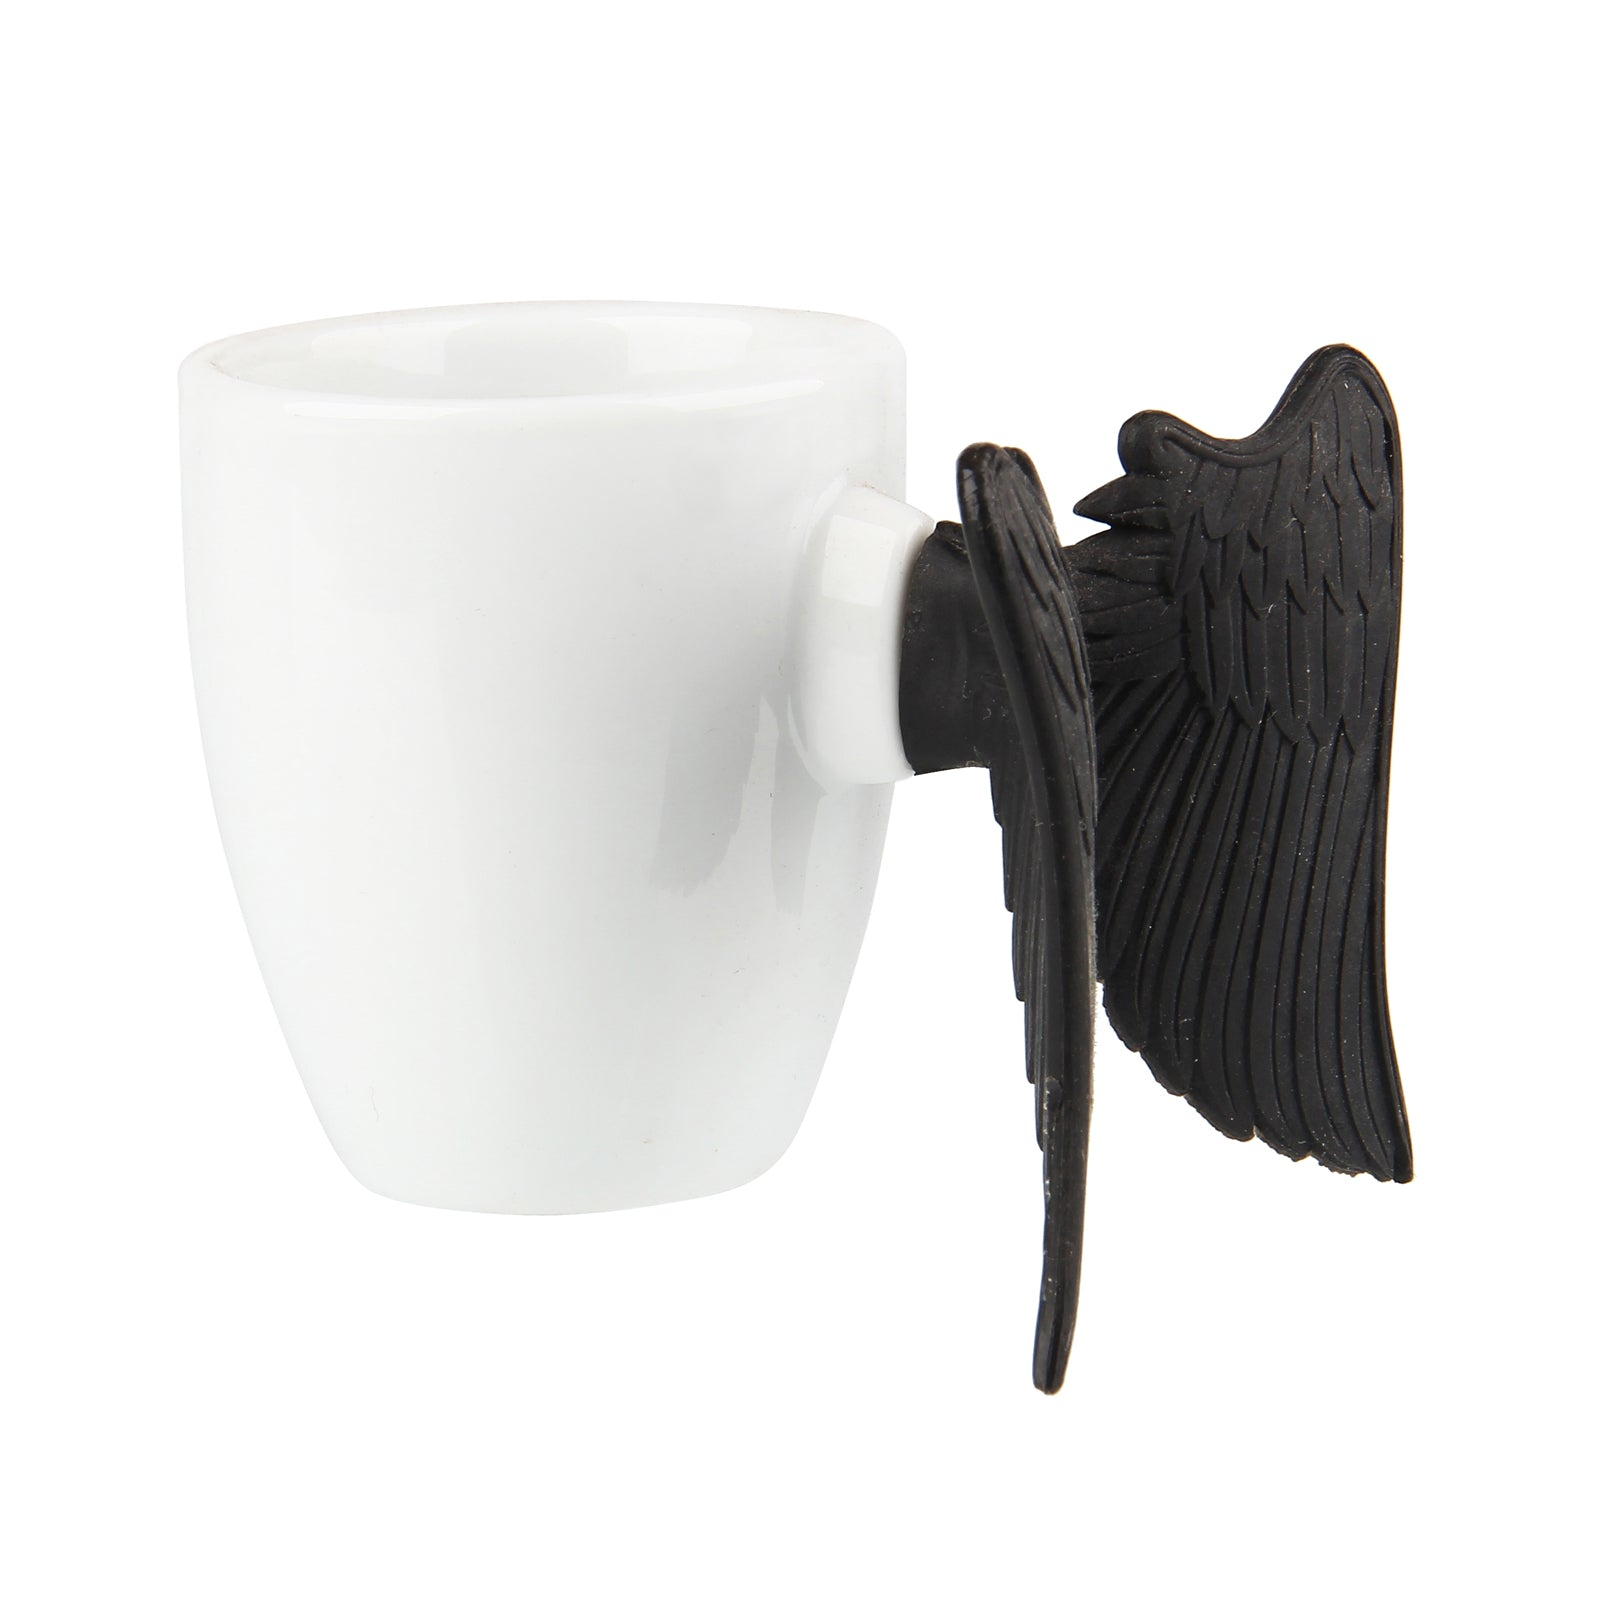 Inspirational Angel Cup - Light Up My Life - Black Wings